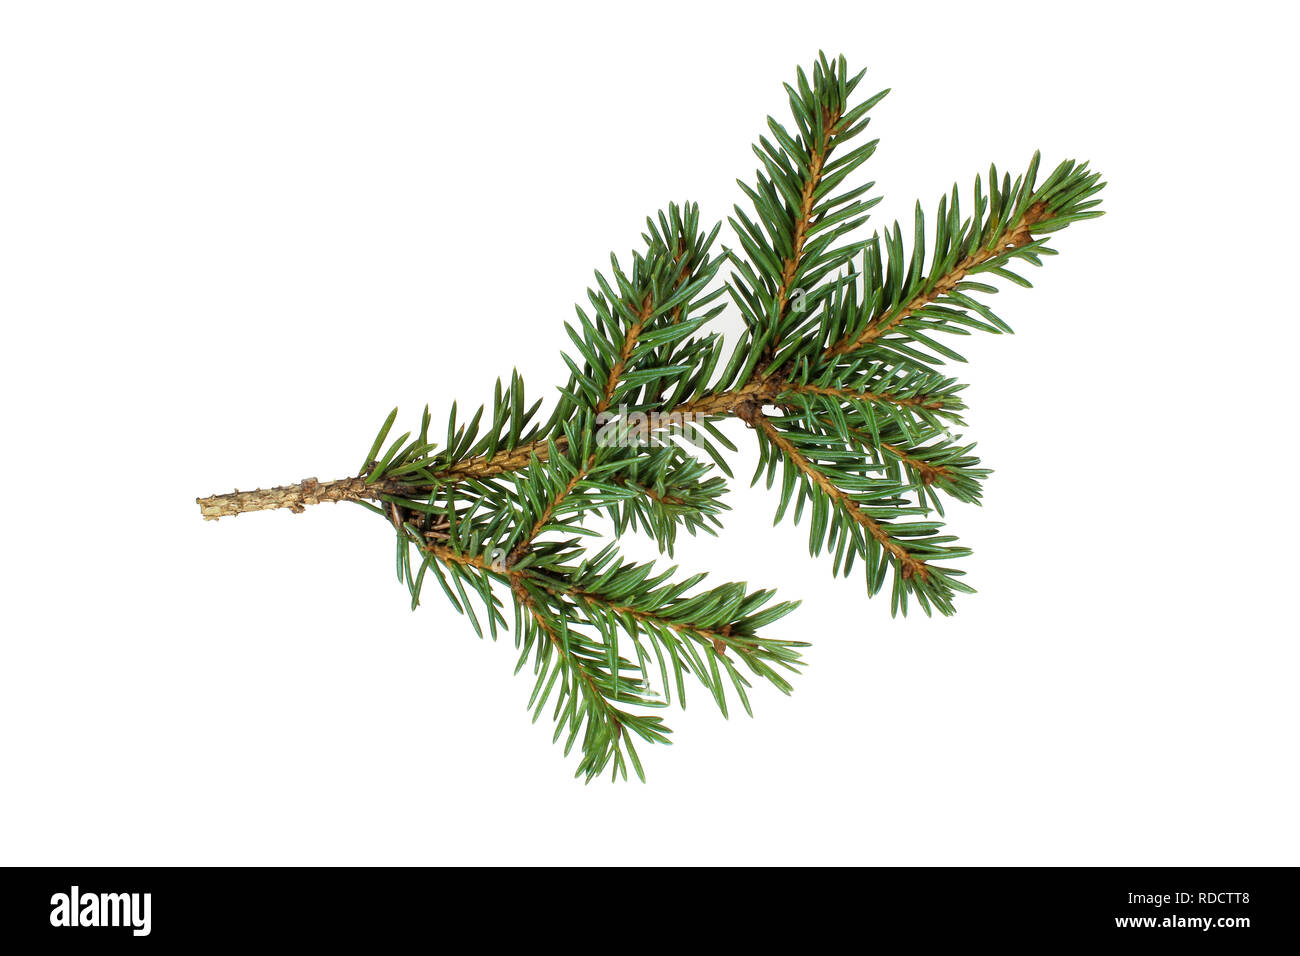 The branch of spruce - Stock Image